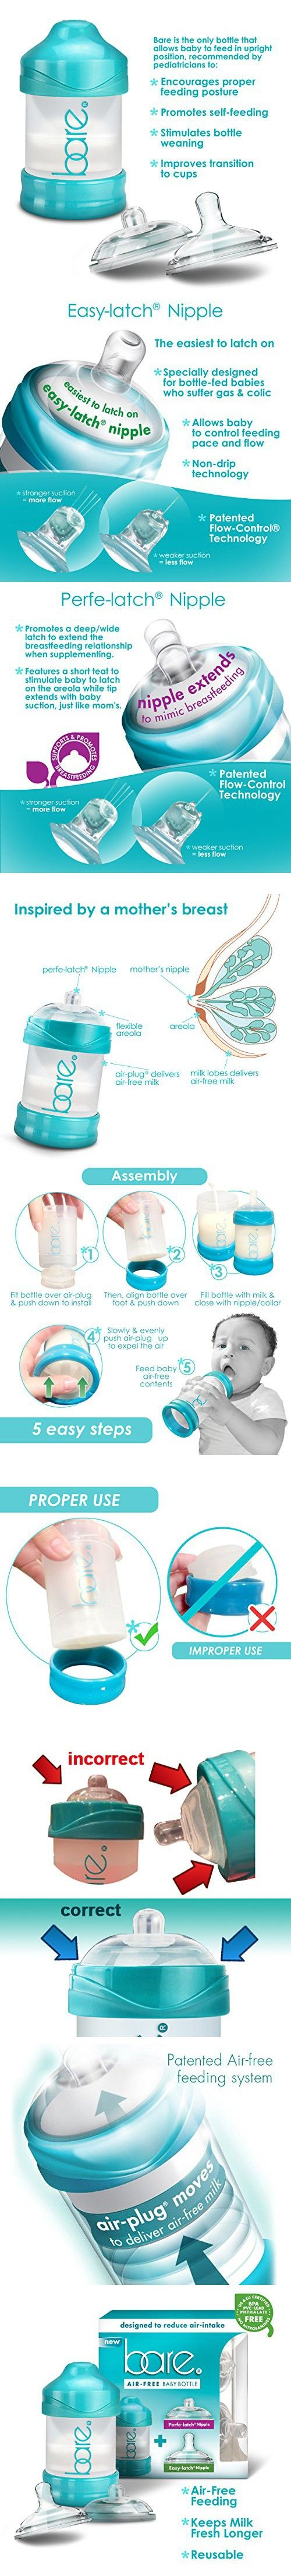 Bare Baby Bottle w/ Breastfeeding & Bottle-Feeding Nipples - Unique Air Free & Flow Control Technology - Baby Registry Favor Gift - 4oz Bottle PackIF NOT FROM BITTYLAB SELLER, IS NOT GUARANTEED